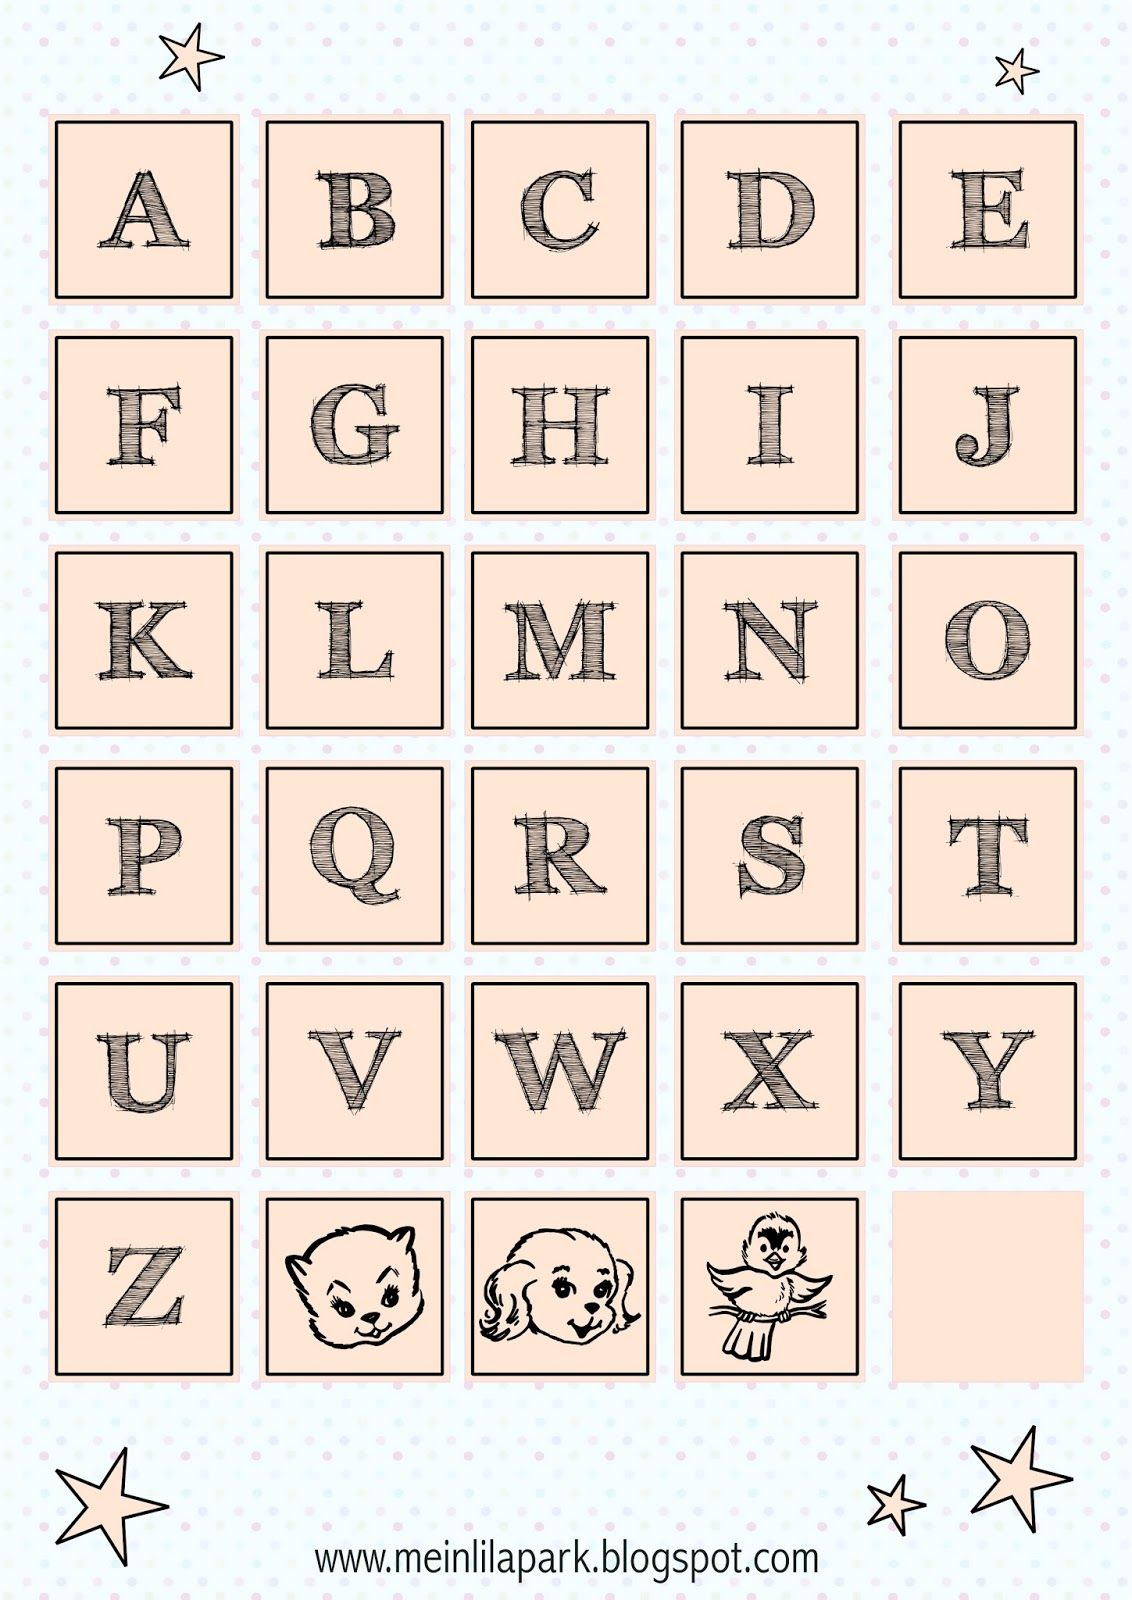 free printable alphabet letter tags free printables and more pinterest schriftarten. Black Bedroom Furniture Sets. Home Design Ideas